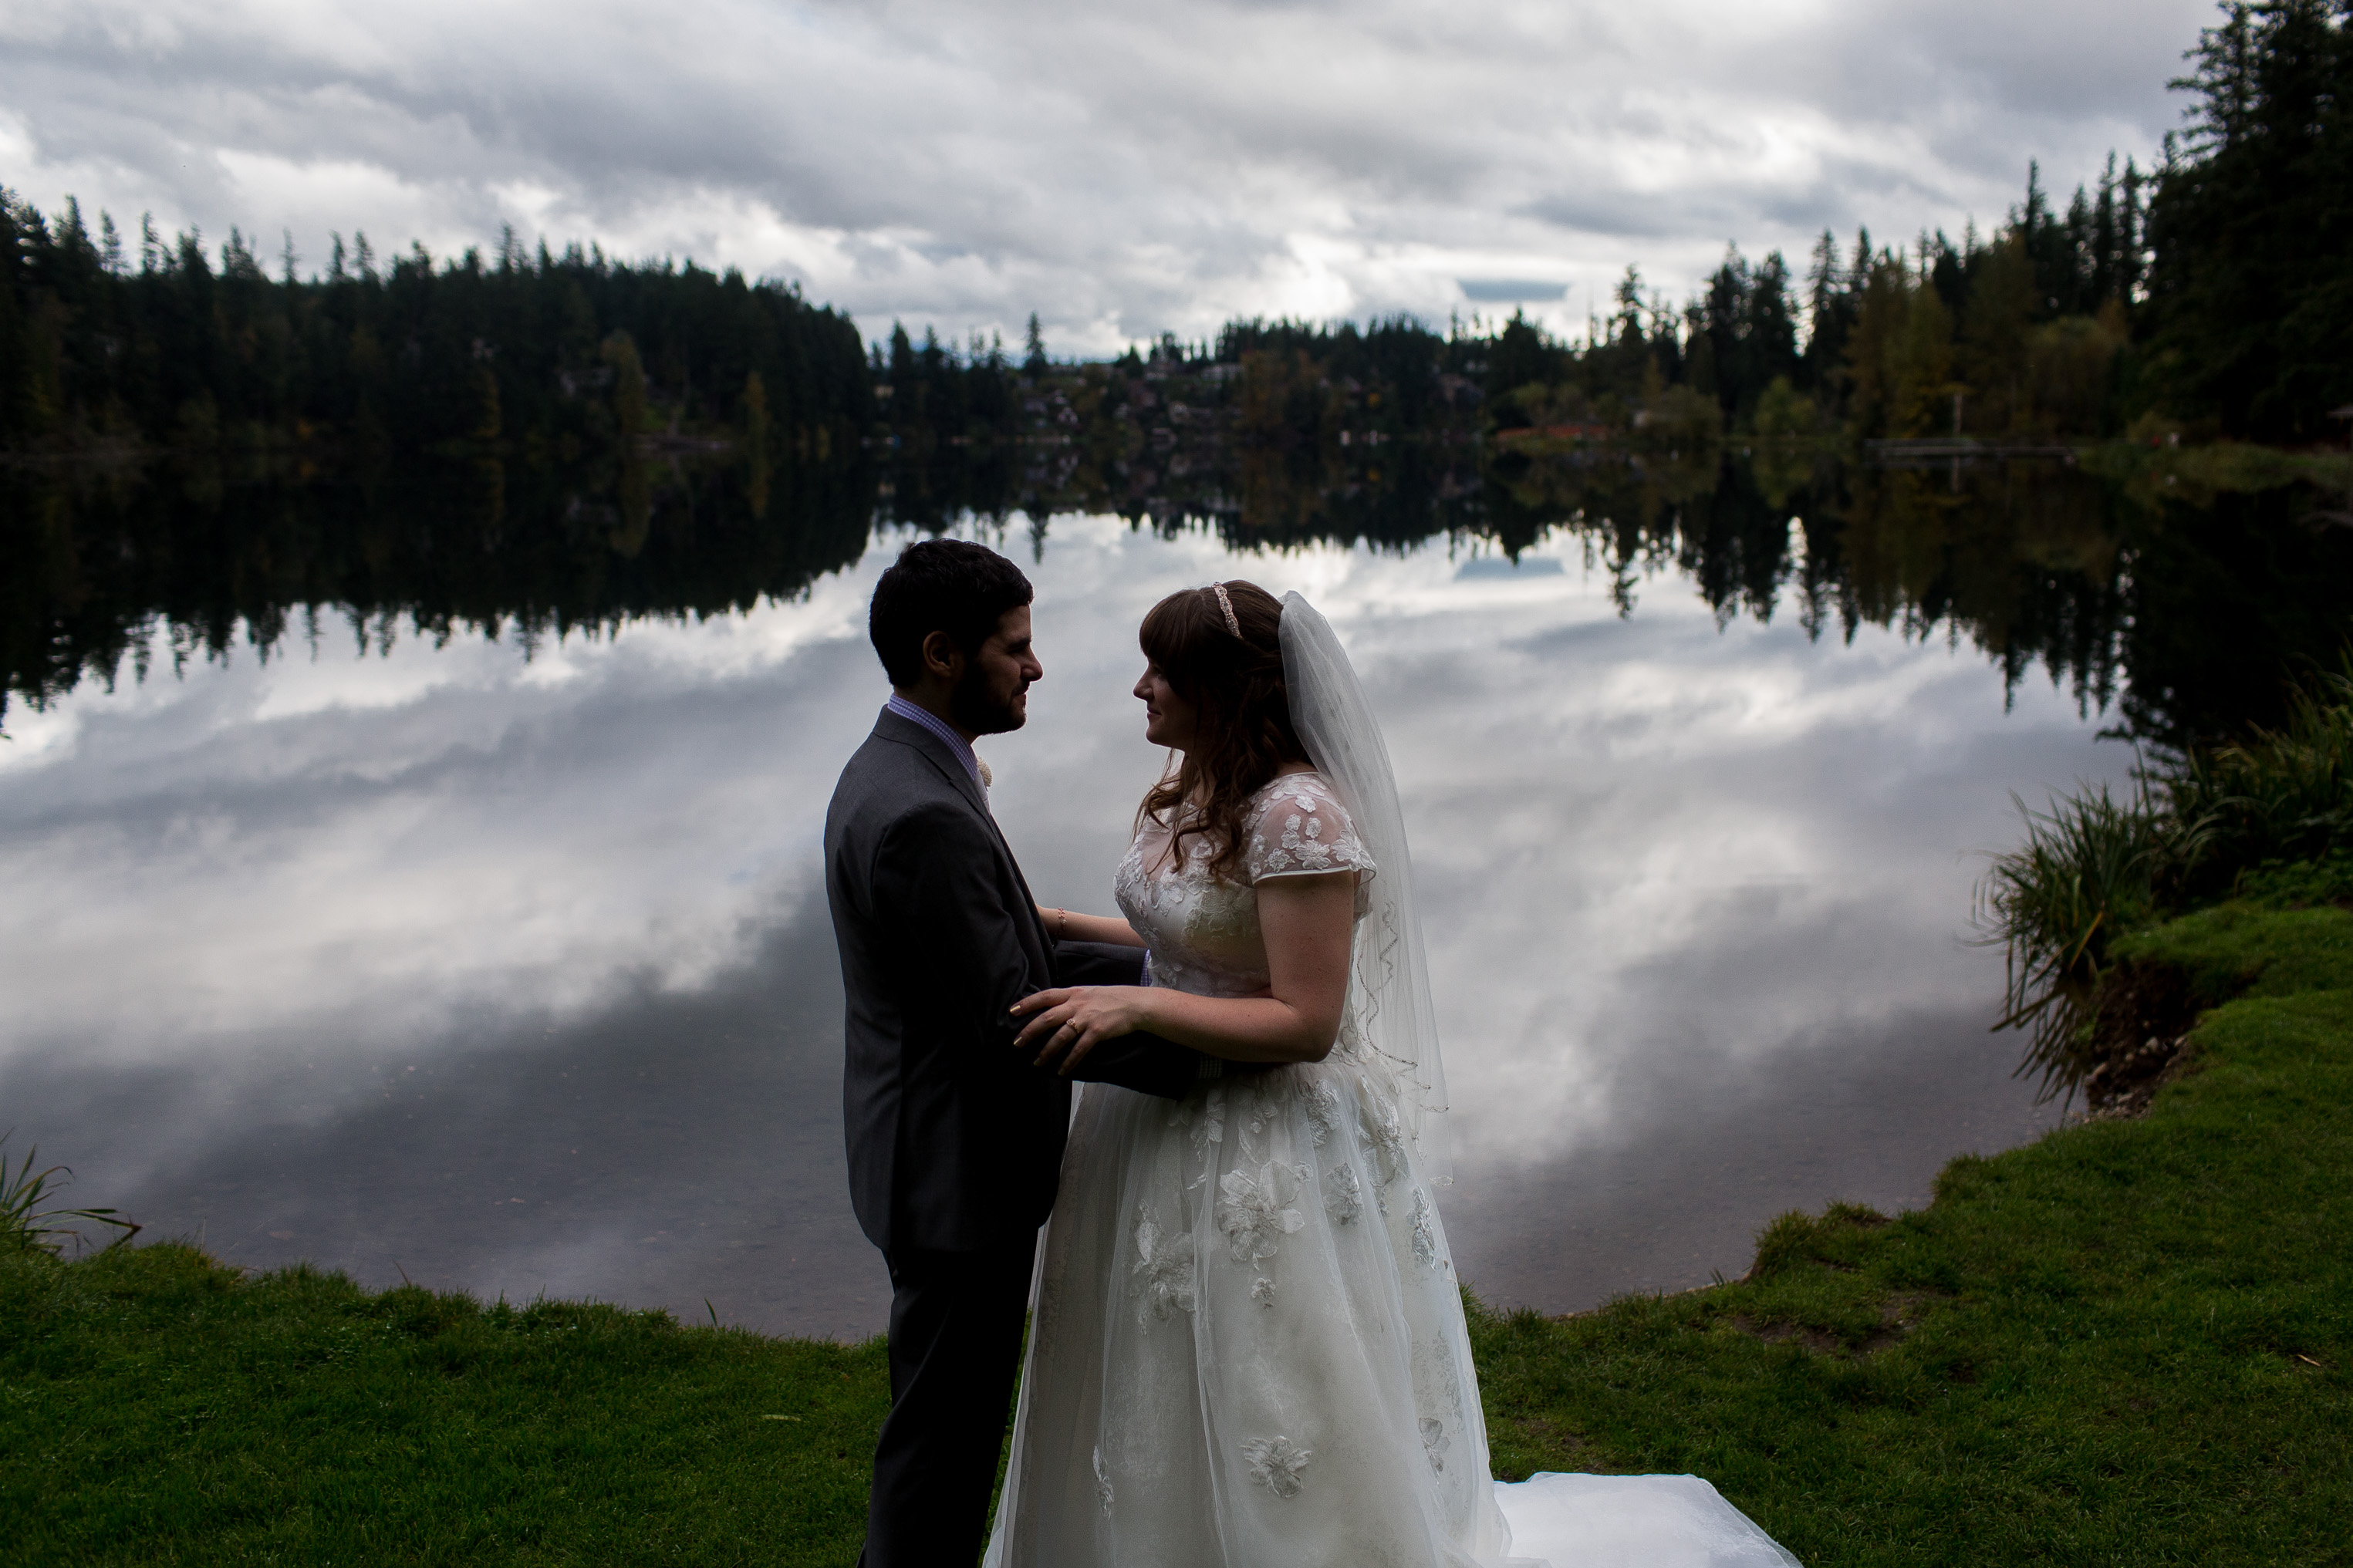 Lake Wilderness Lodge Wedding, JayLee Photography, cloud reflection wedding photography